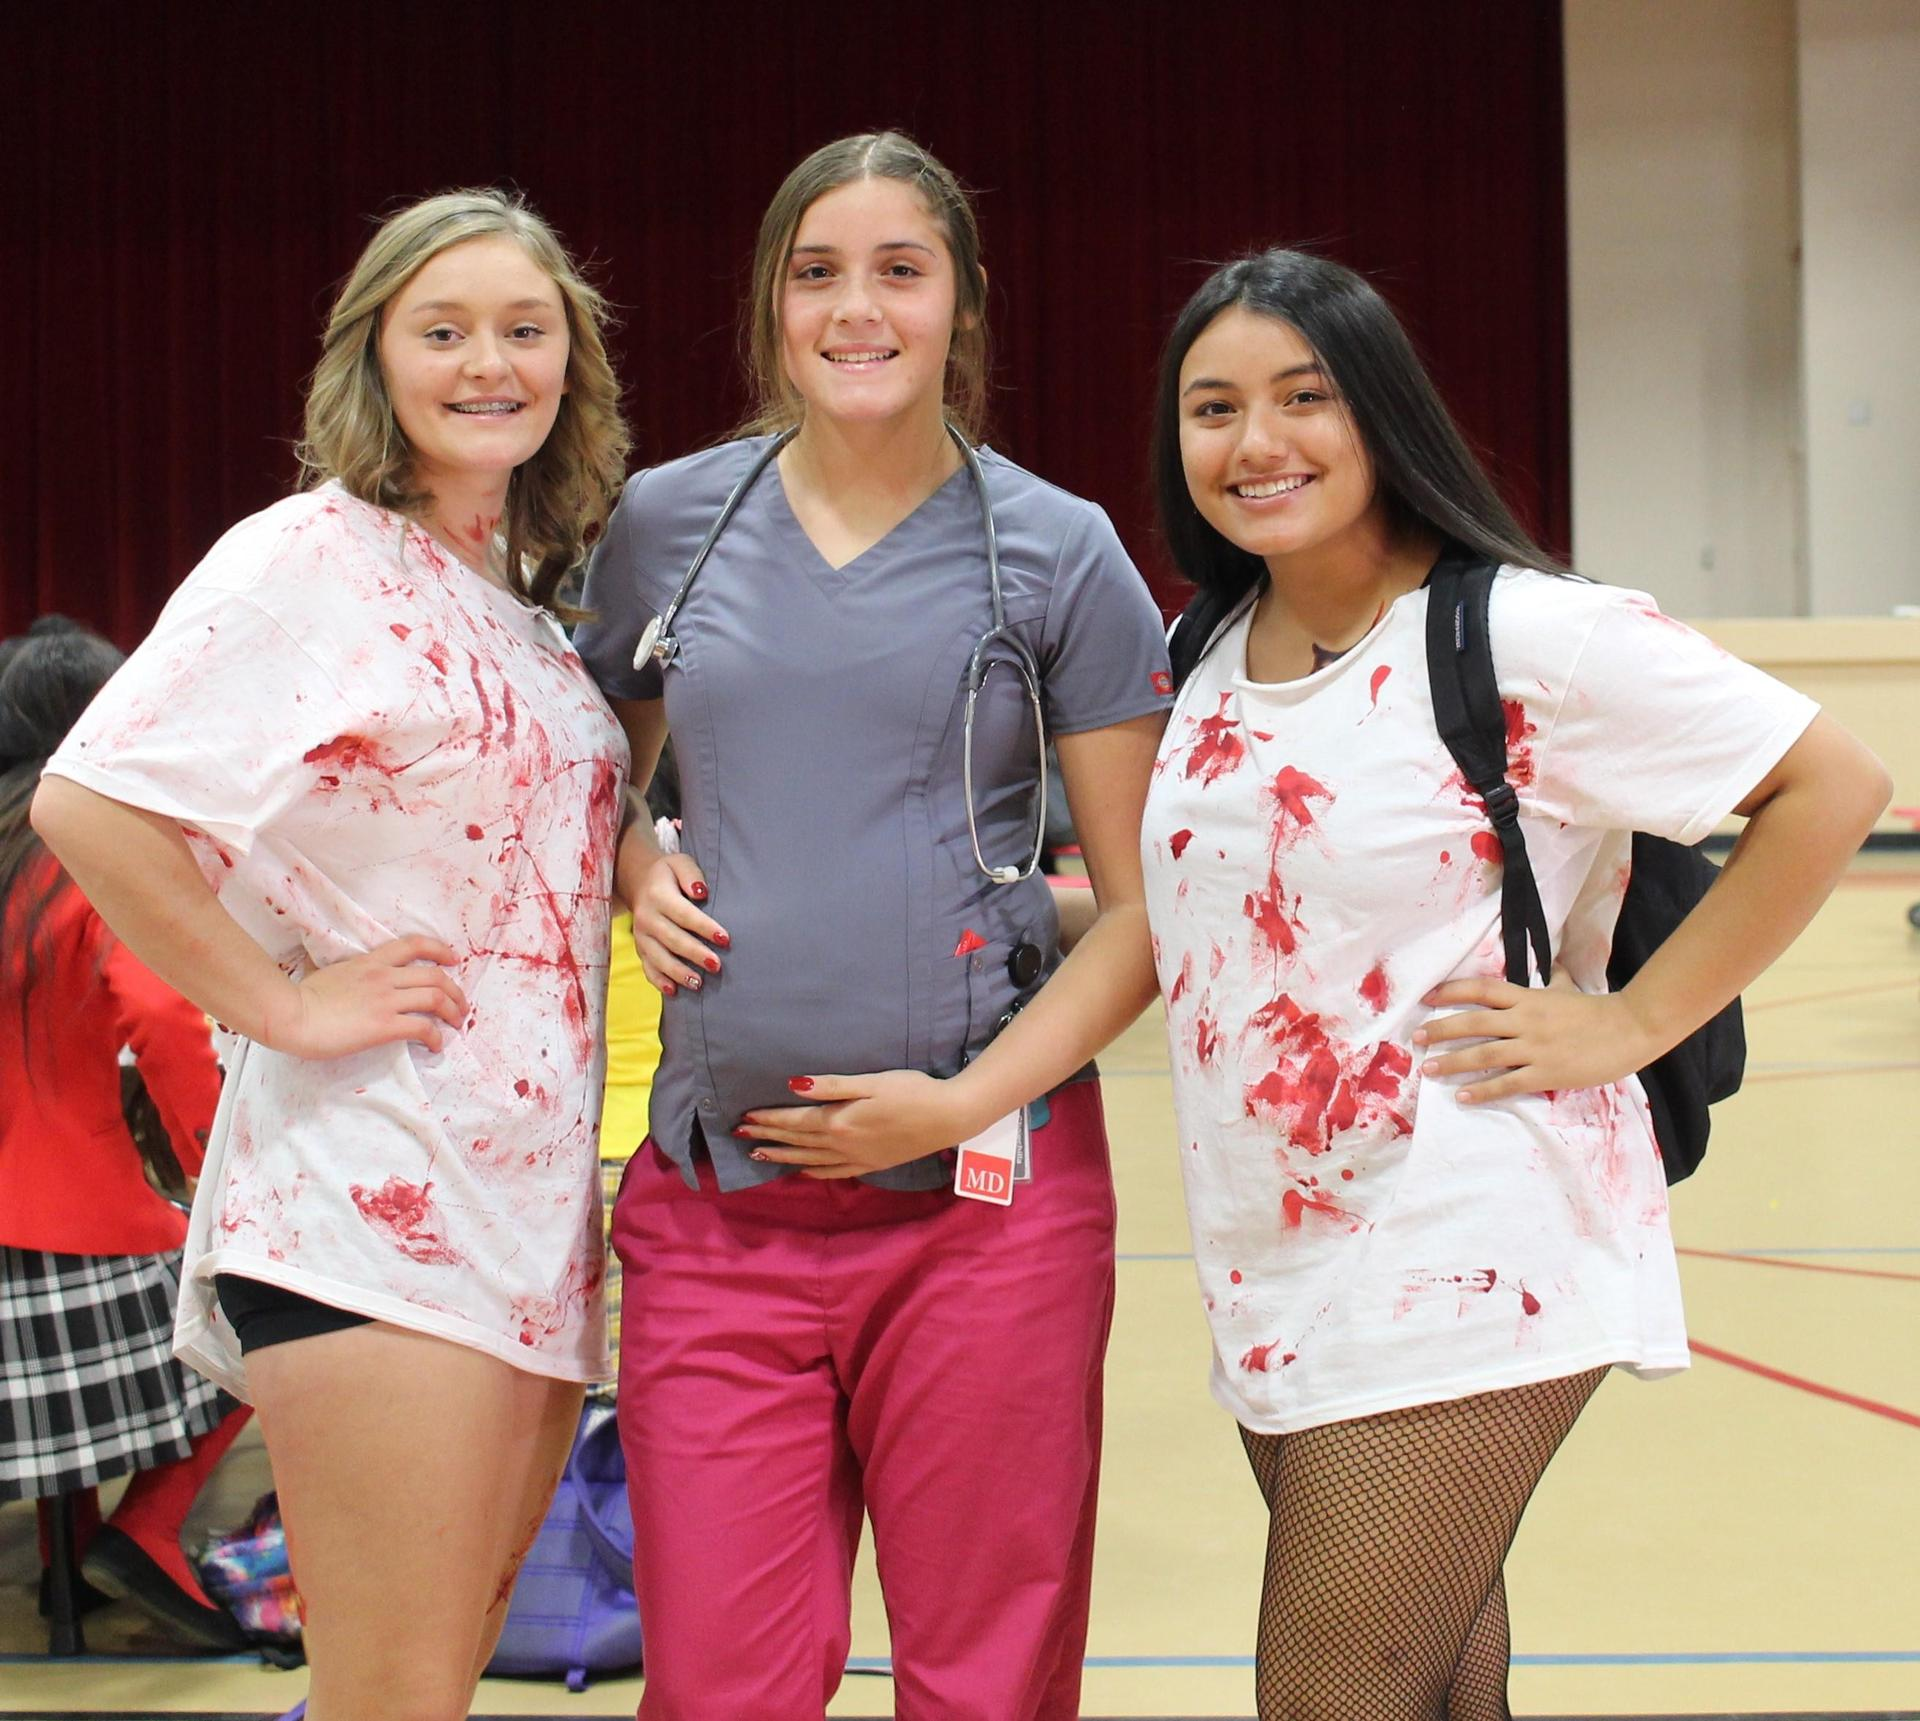 Mekenah Clairday as a zombie, Halle alvarado a doctor, Erykah negron as a zombie